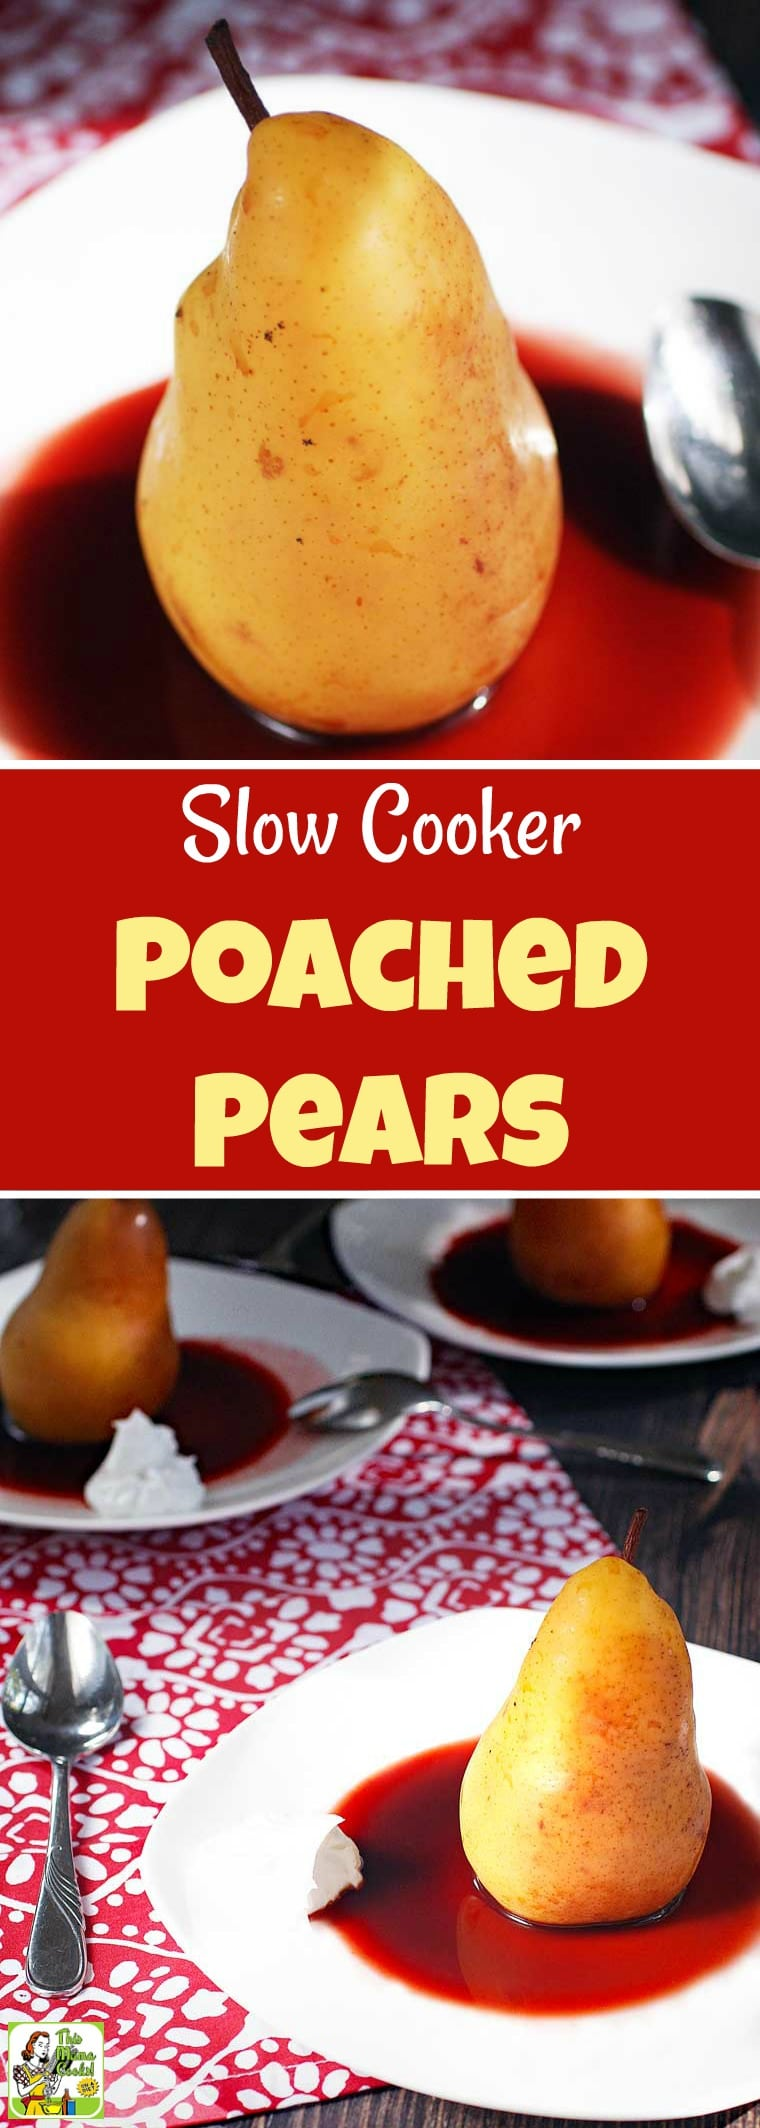 Slow Cooker Poached Pears recipe for Valentine's Day uses unsweetened cherry juice instead of wine and orange juice and monk fruit sweetener instead of sugar. Served with coconut cream. This dessert recipe is sugar-free, vegan and gluten-free. #sugarfree #sugarfreerecipes #pears #recipe #easy #recipeoftheday #healthyrecipes #glutenfree #easyrecipes #desserts #dessertrecipes #dessertideas #slowcooker #slowcookerrecipes #crockpot #crockpotrecipes #valentinesday #vegan #veganfood #veganrecipes